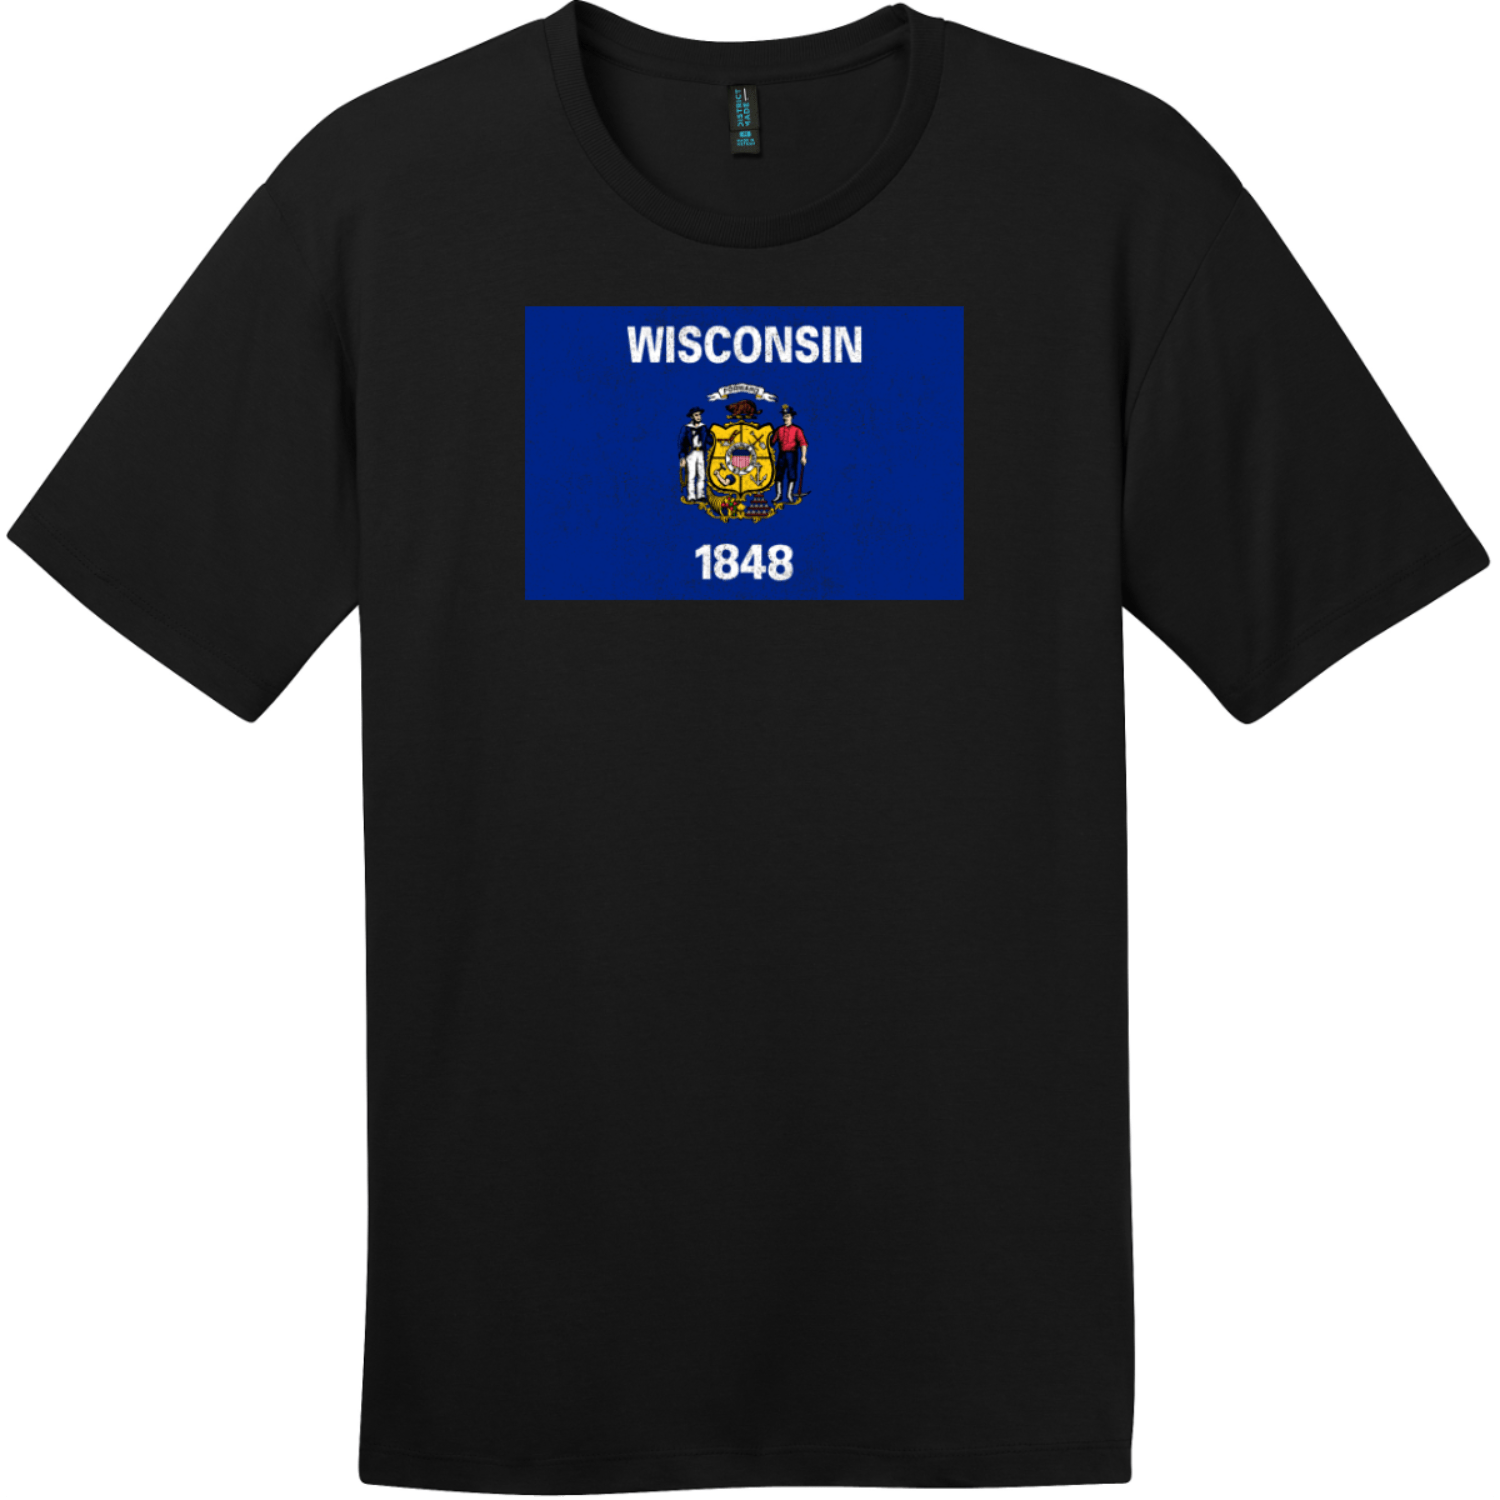 Wisconsin Flag Vintage T-Shirt Jet Black District Perfect Weight Tee DT104